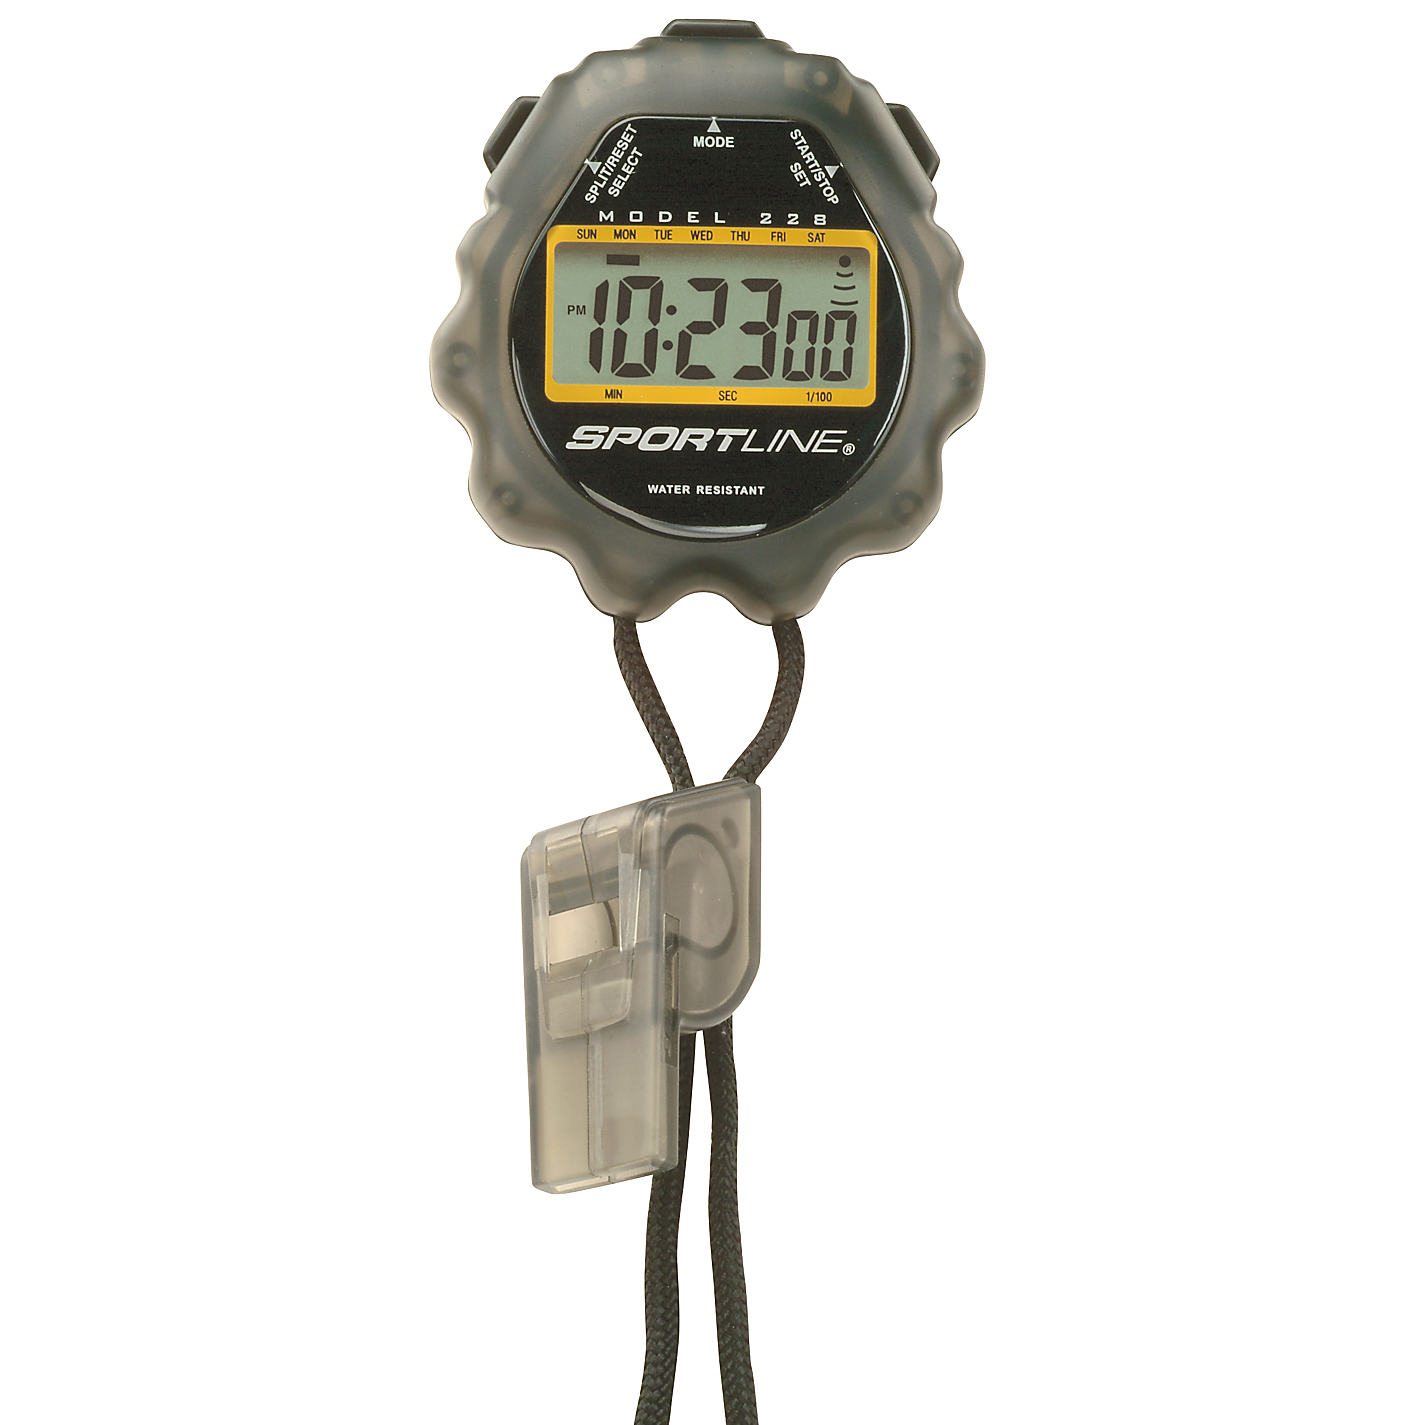 Sportline Stopwatch and Whistle Set Instructions